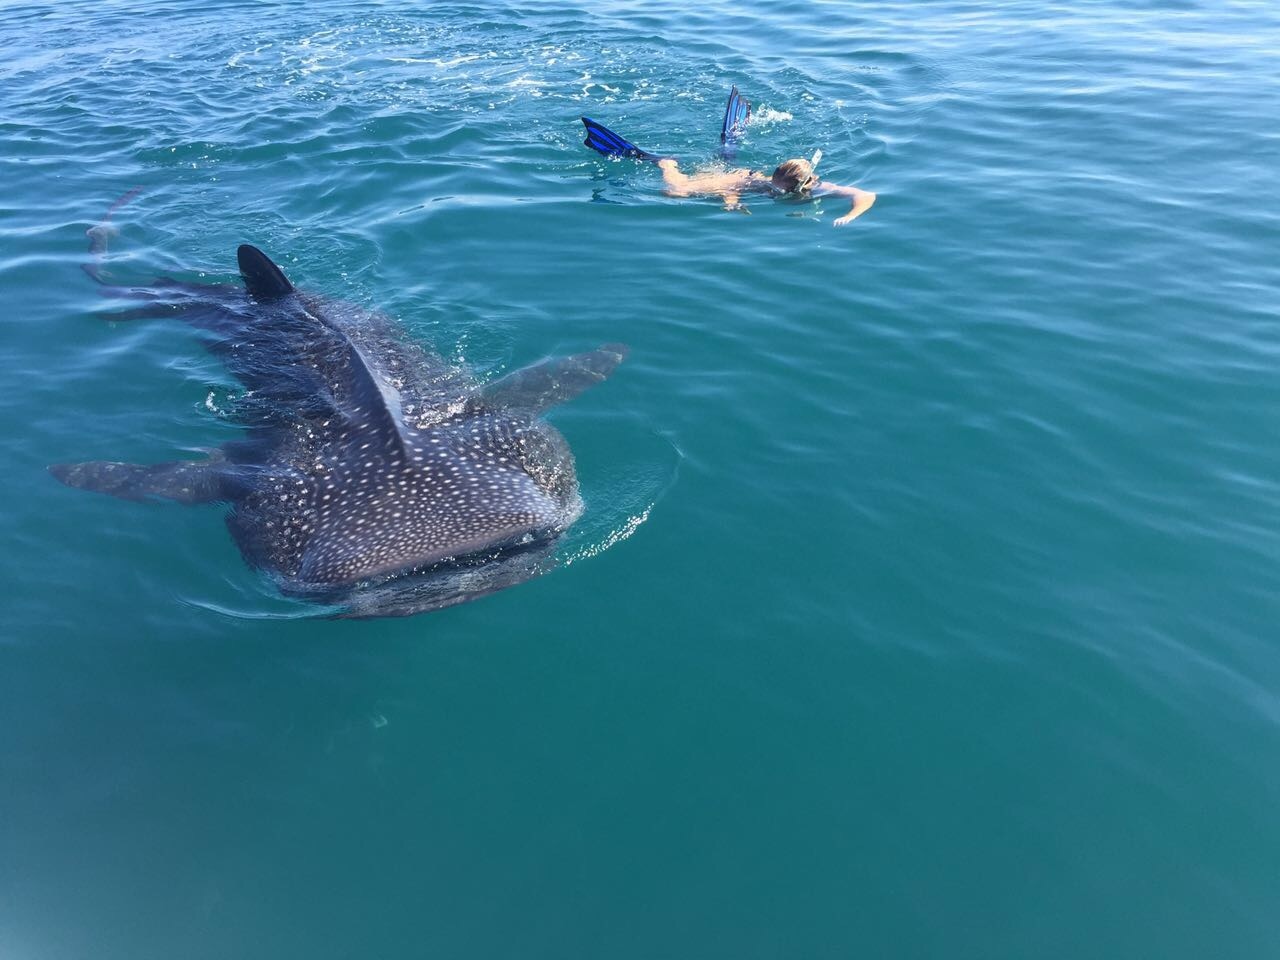 back the whale sharks all roads lead to roam it felt like the good ol times darren situated on the bow of the boat looking out for sharks manolo behind the wheel captaining and the volunteers jotting